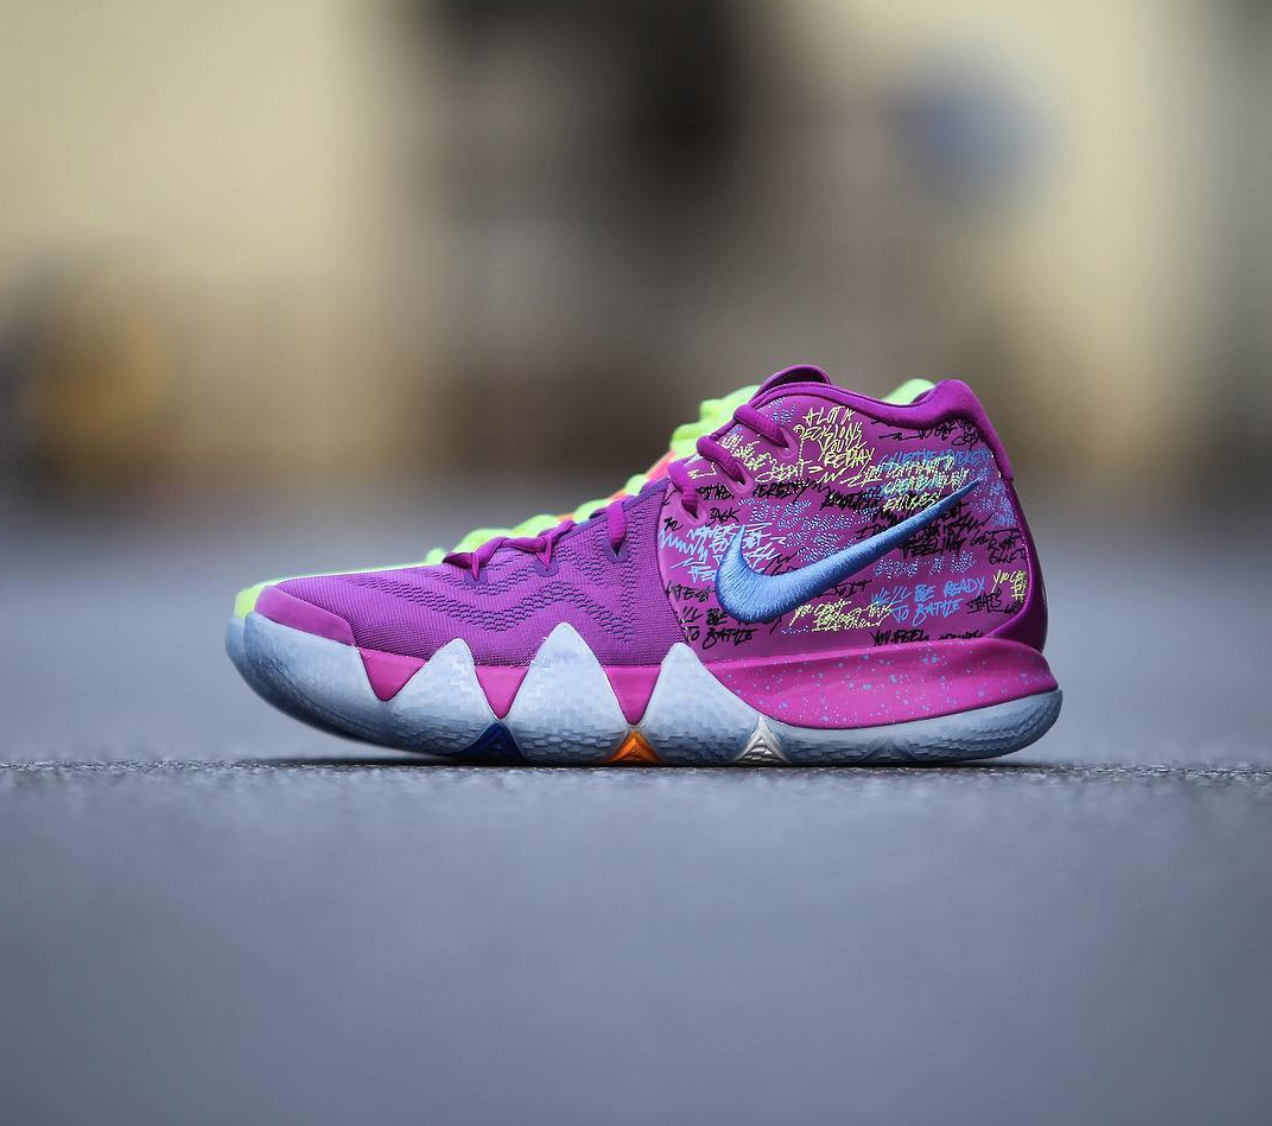 new arrival 4f20b d28a0 Here's a Detailed Look at the Nike Kyrie 4 'Confetti ...